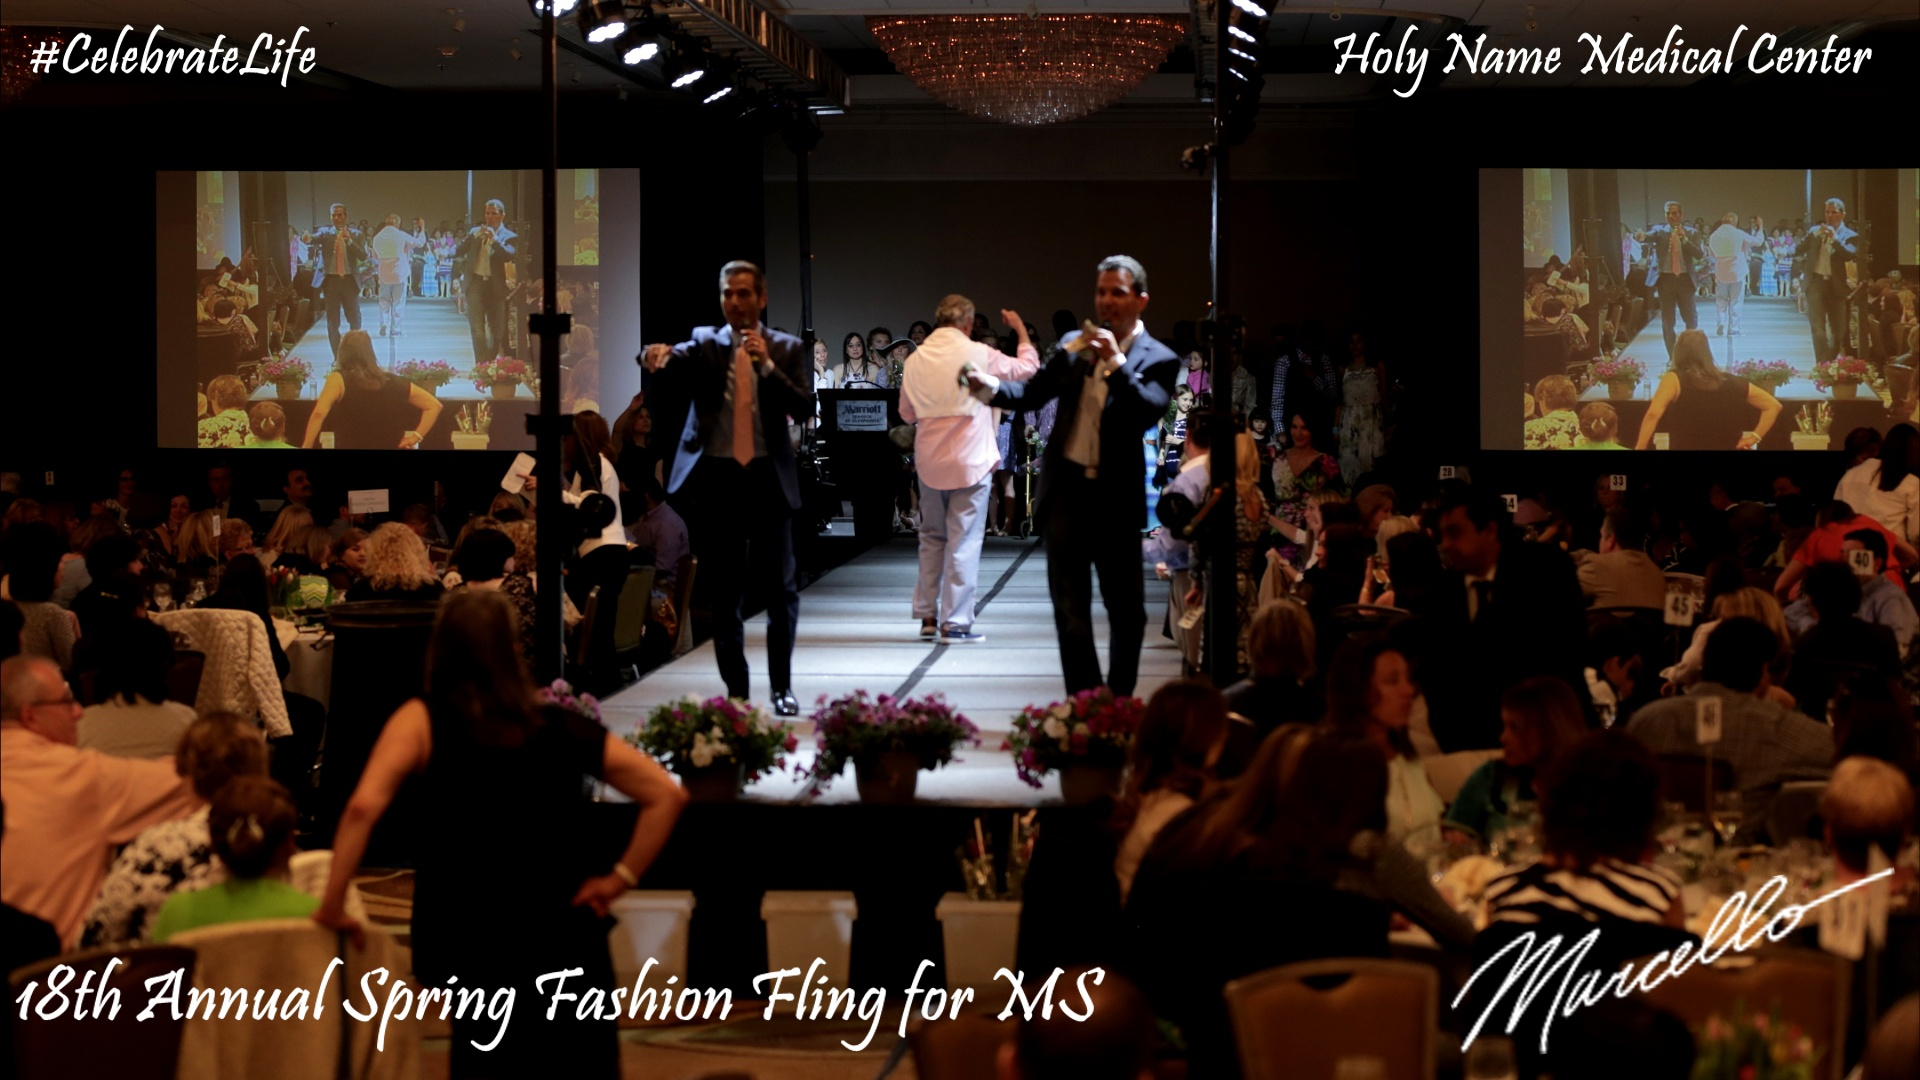 Marcello Pedalino, Spring Fashion Fling for MS, Chris Cimino and Mayor Joe Parisi, Teaneck Marriott At Glenpointe.